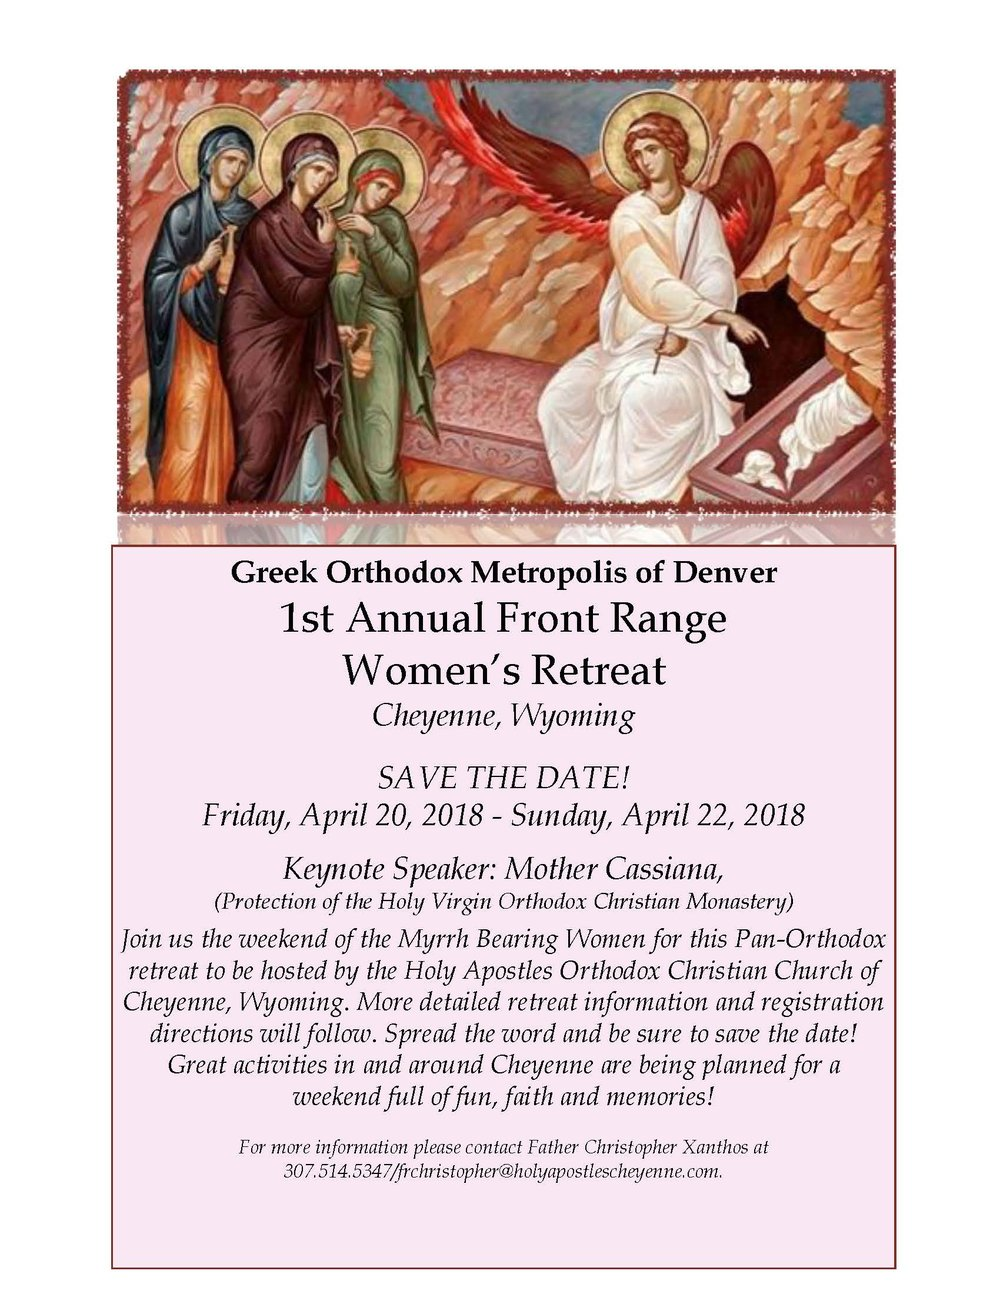 2018 Front Range Women's Retreat Save the Date Flier.jpg